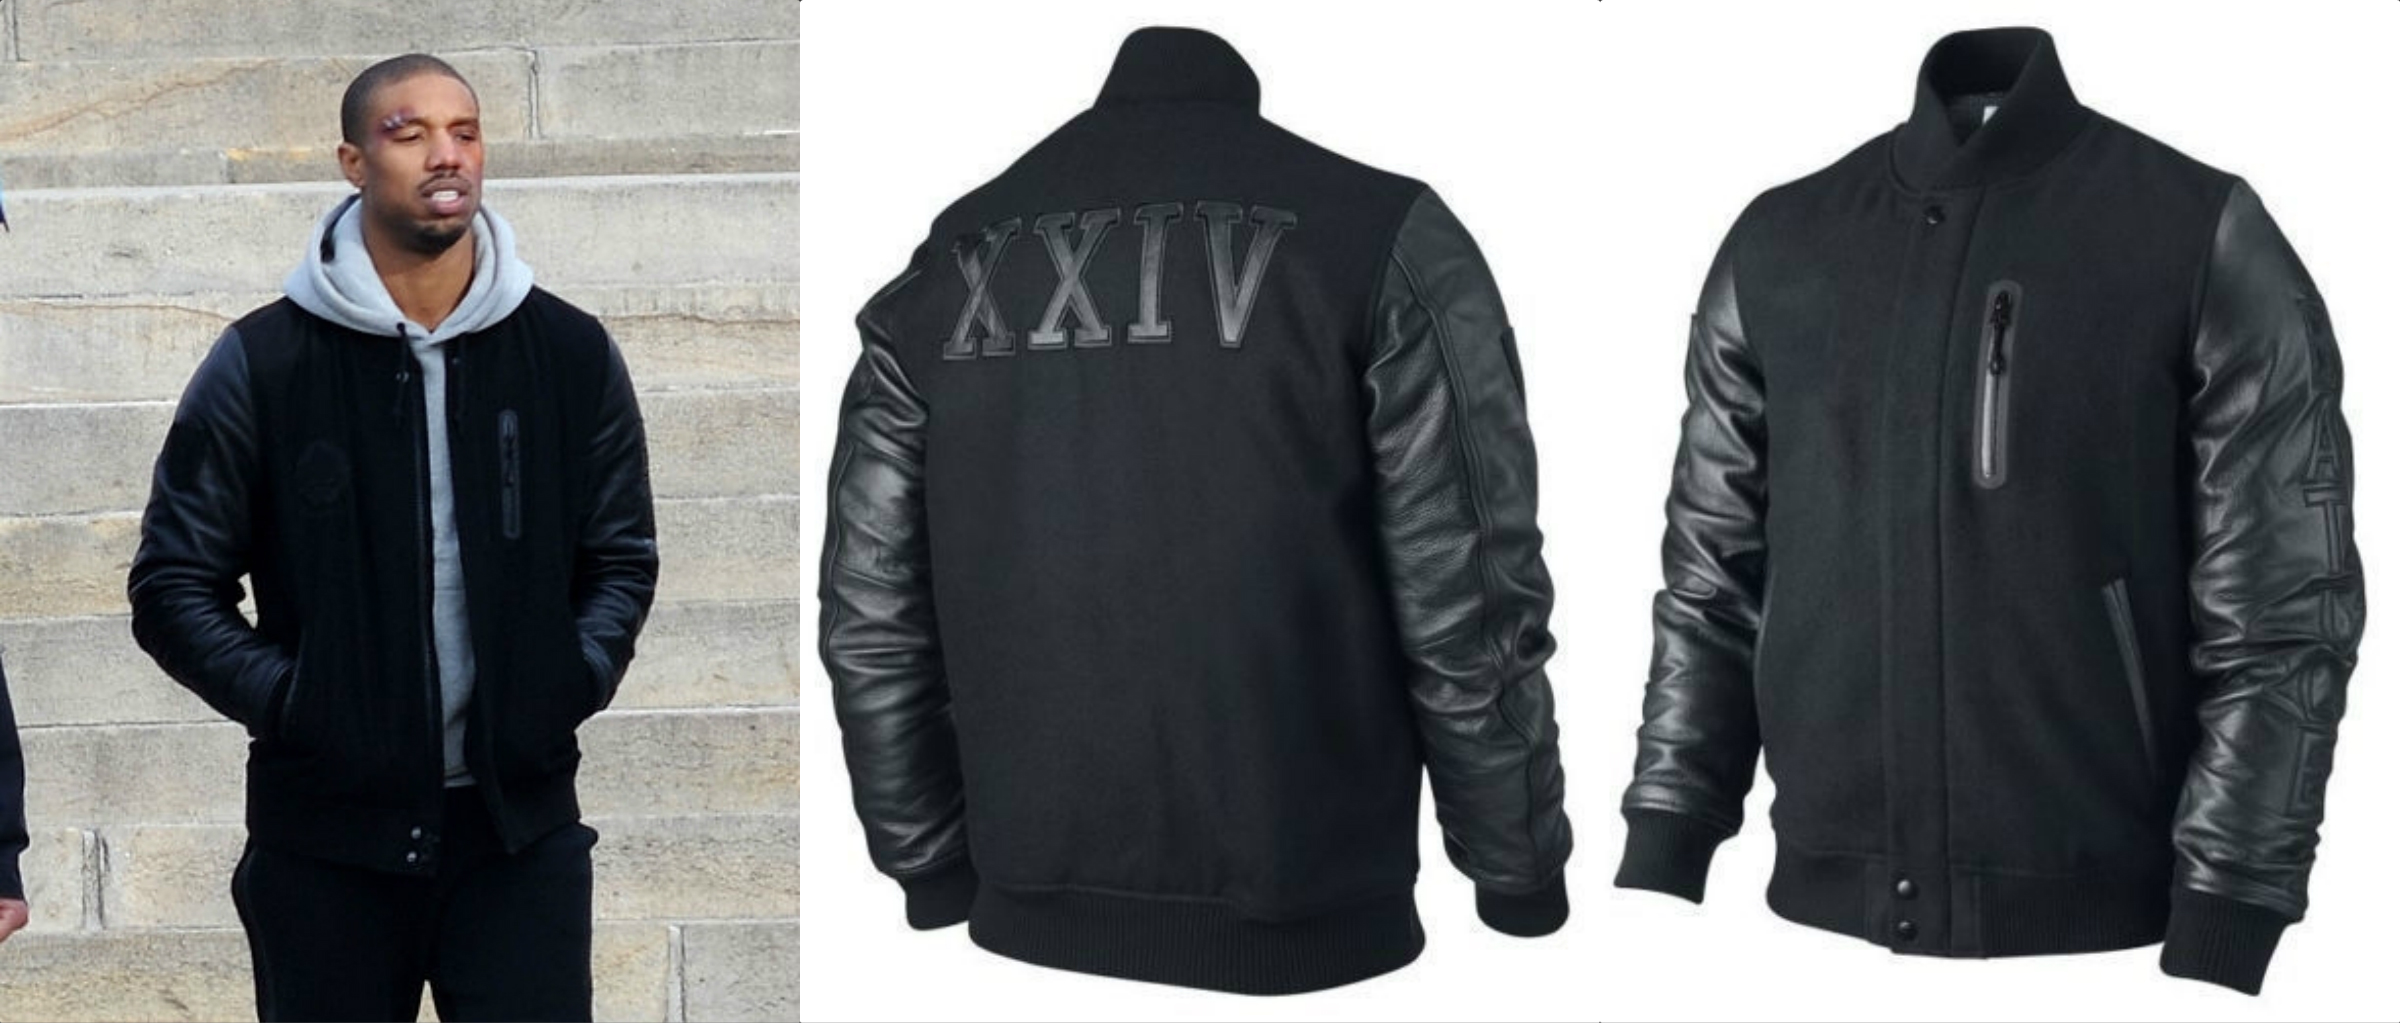 Destroyer XXIV Battle Leather Sleeves Jacket